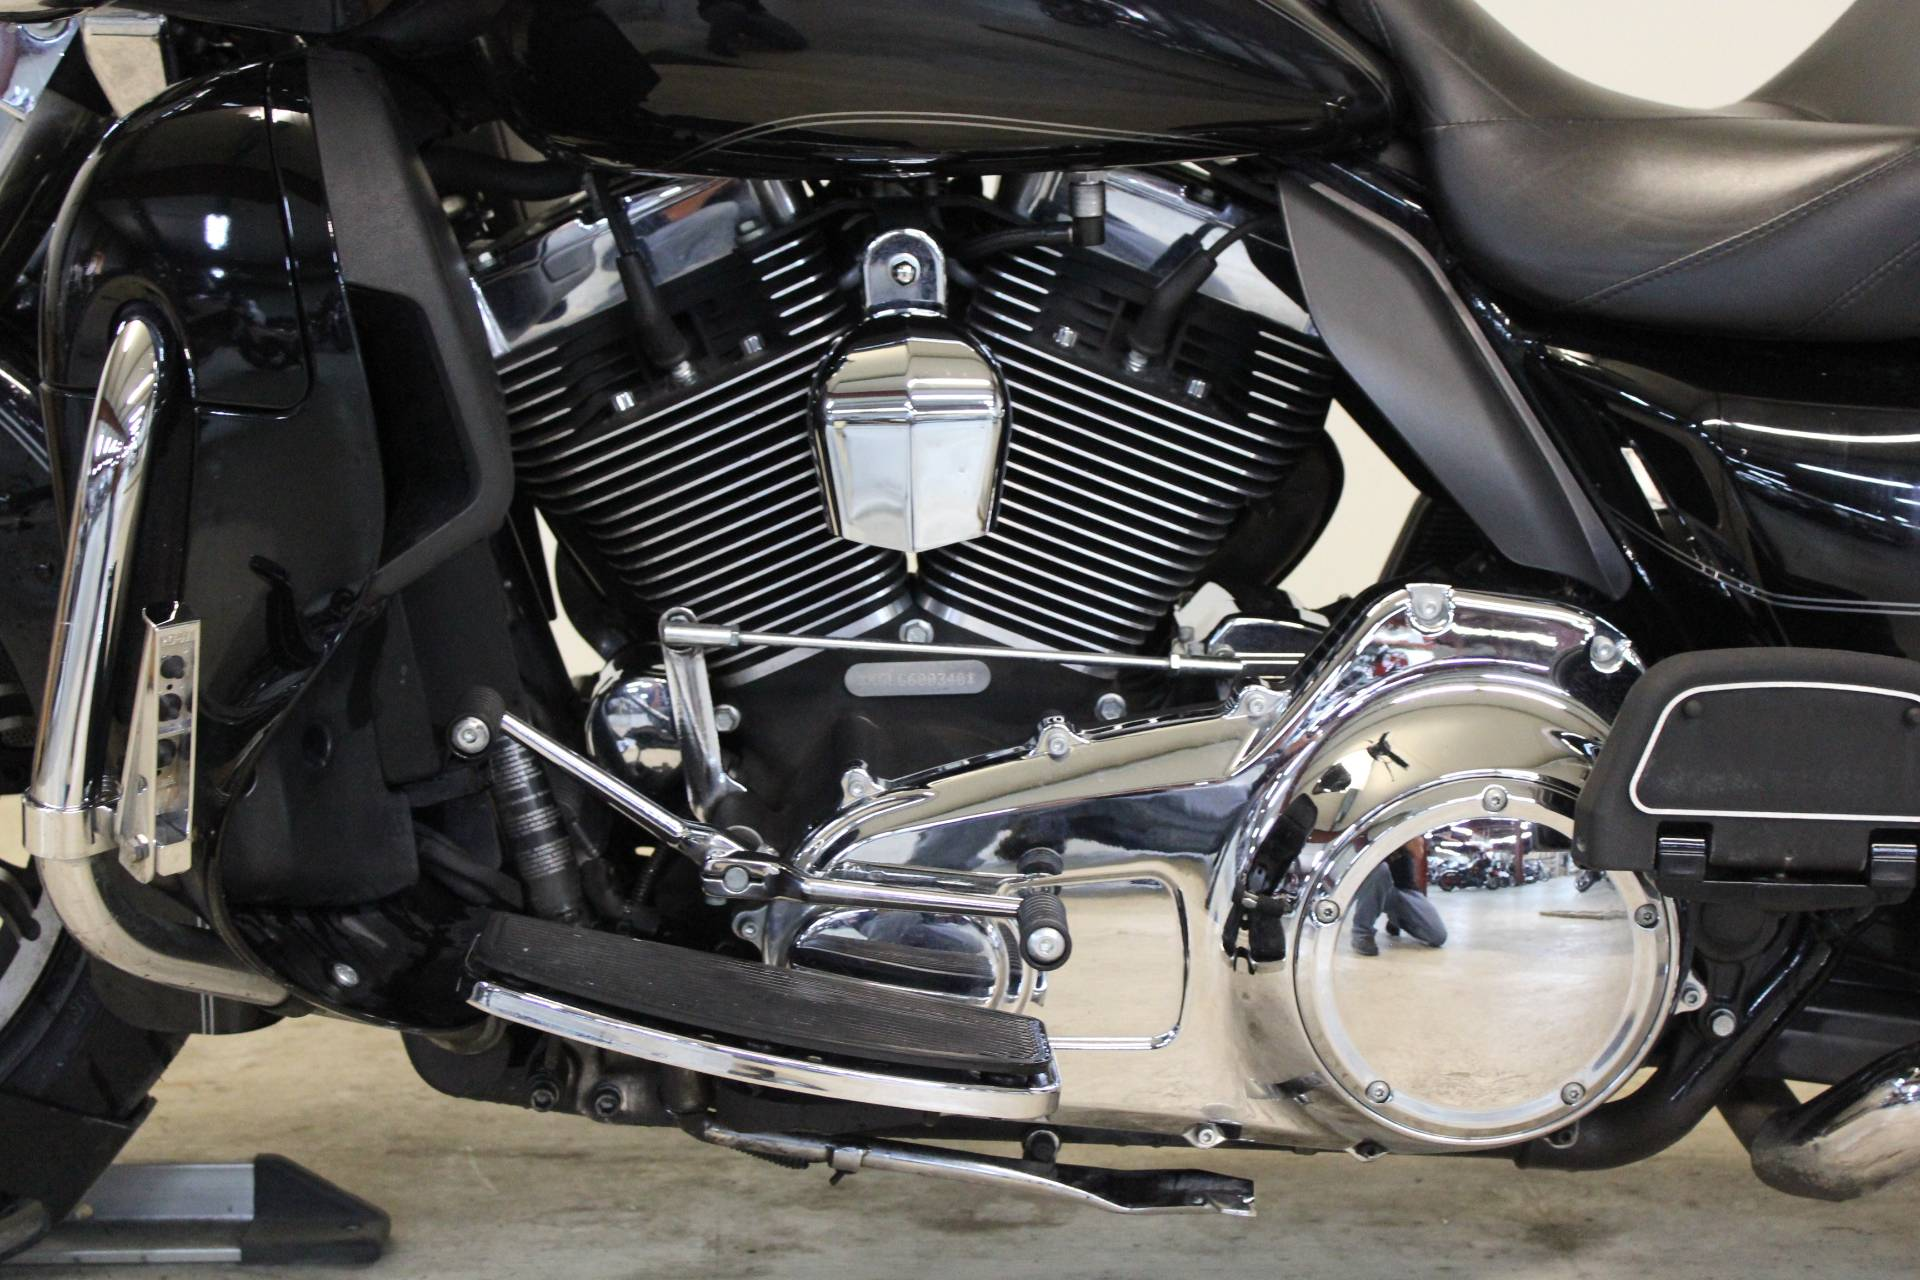 2016 Harley-Davidson Road Glide® Ultra in Pittsfield, Massachusetts - Photo 13